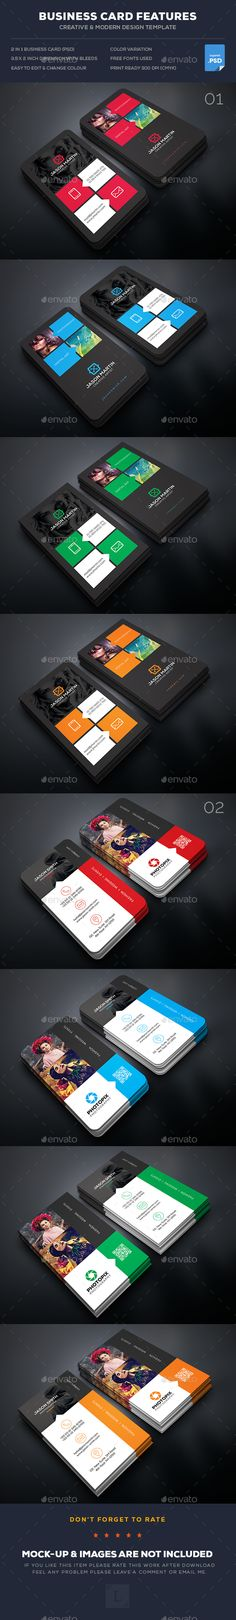 Buy Photography Business Card Bundle by UXcred on GraphicRiver. FEATURES: Easy Customizable and Editable Business card in with bleed CMYK Color Design in 300 DPI Resolut. Buy Business Cards, Vintage Business Cards, Artist Business Cards, Simple Business Cards, Business Card Design, Business Branding, Cv Web, Photography Business Cards, Food Photography